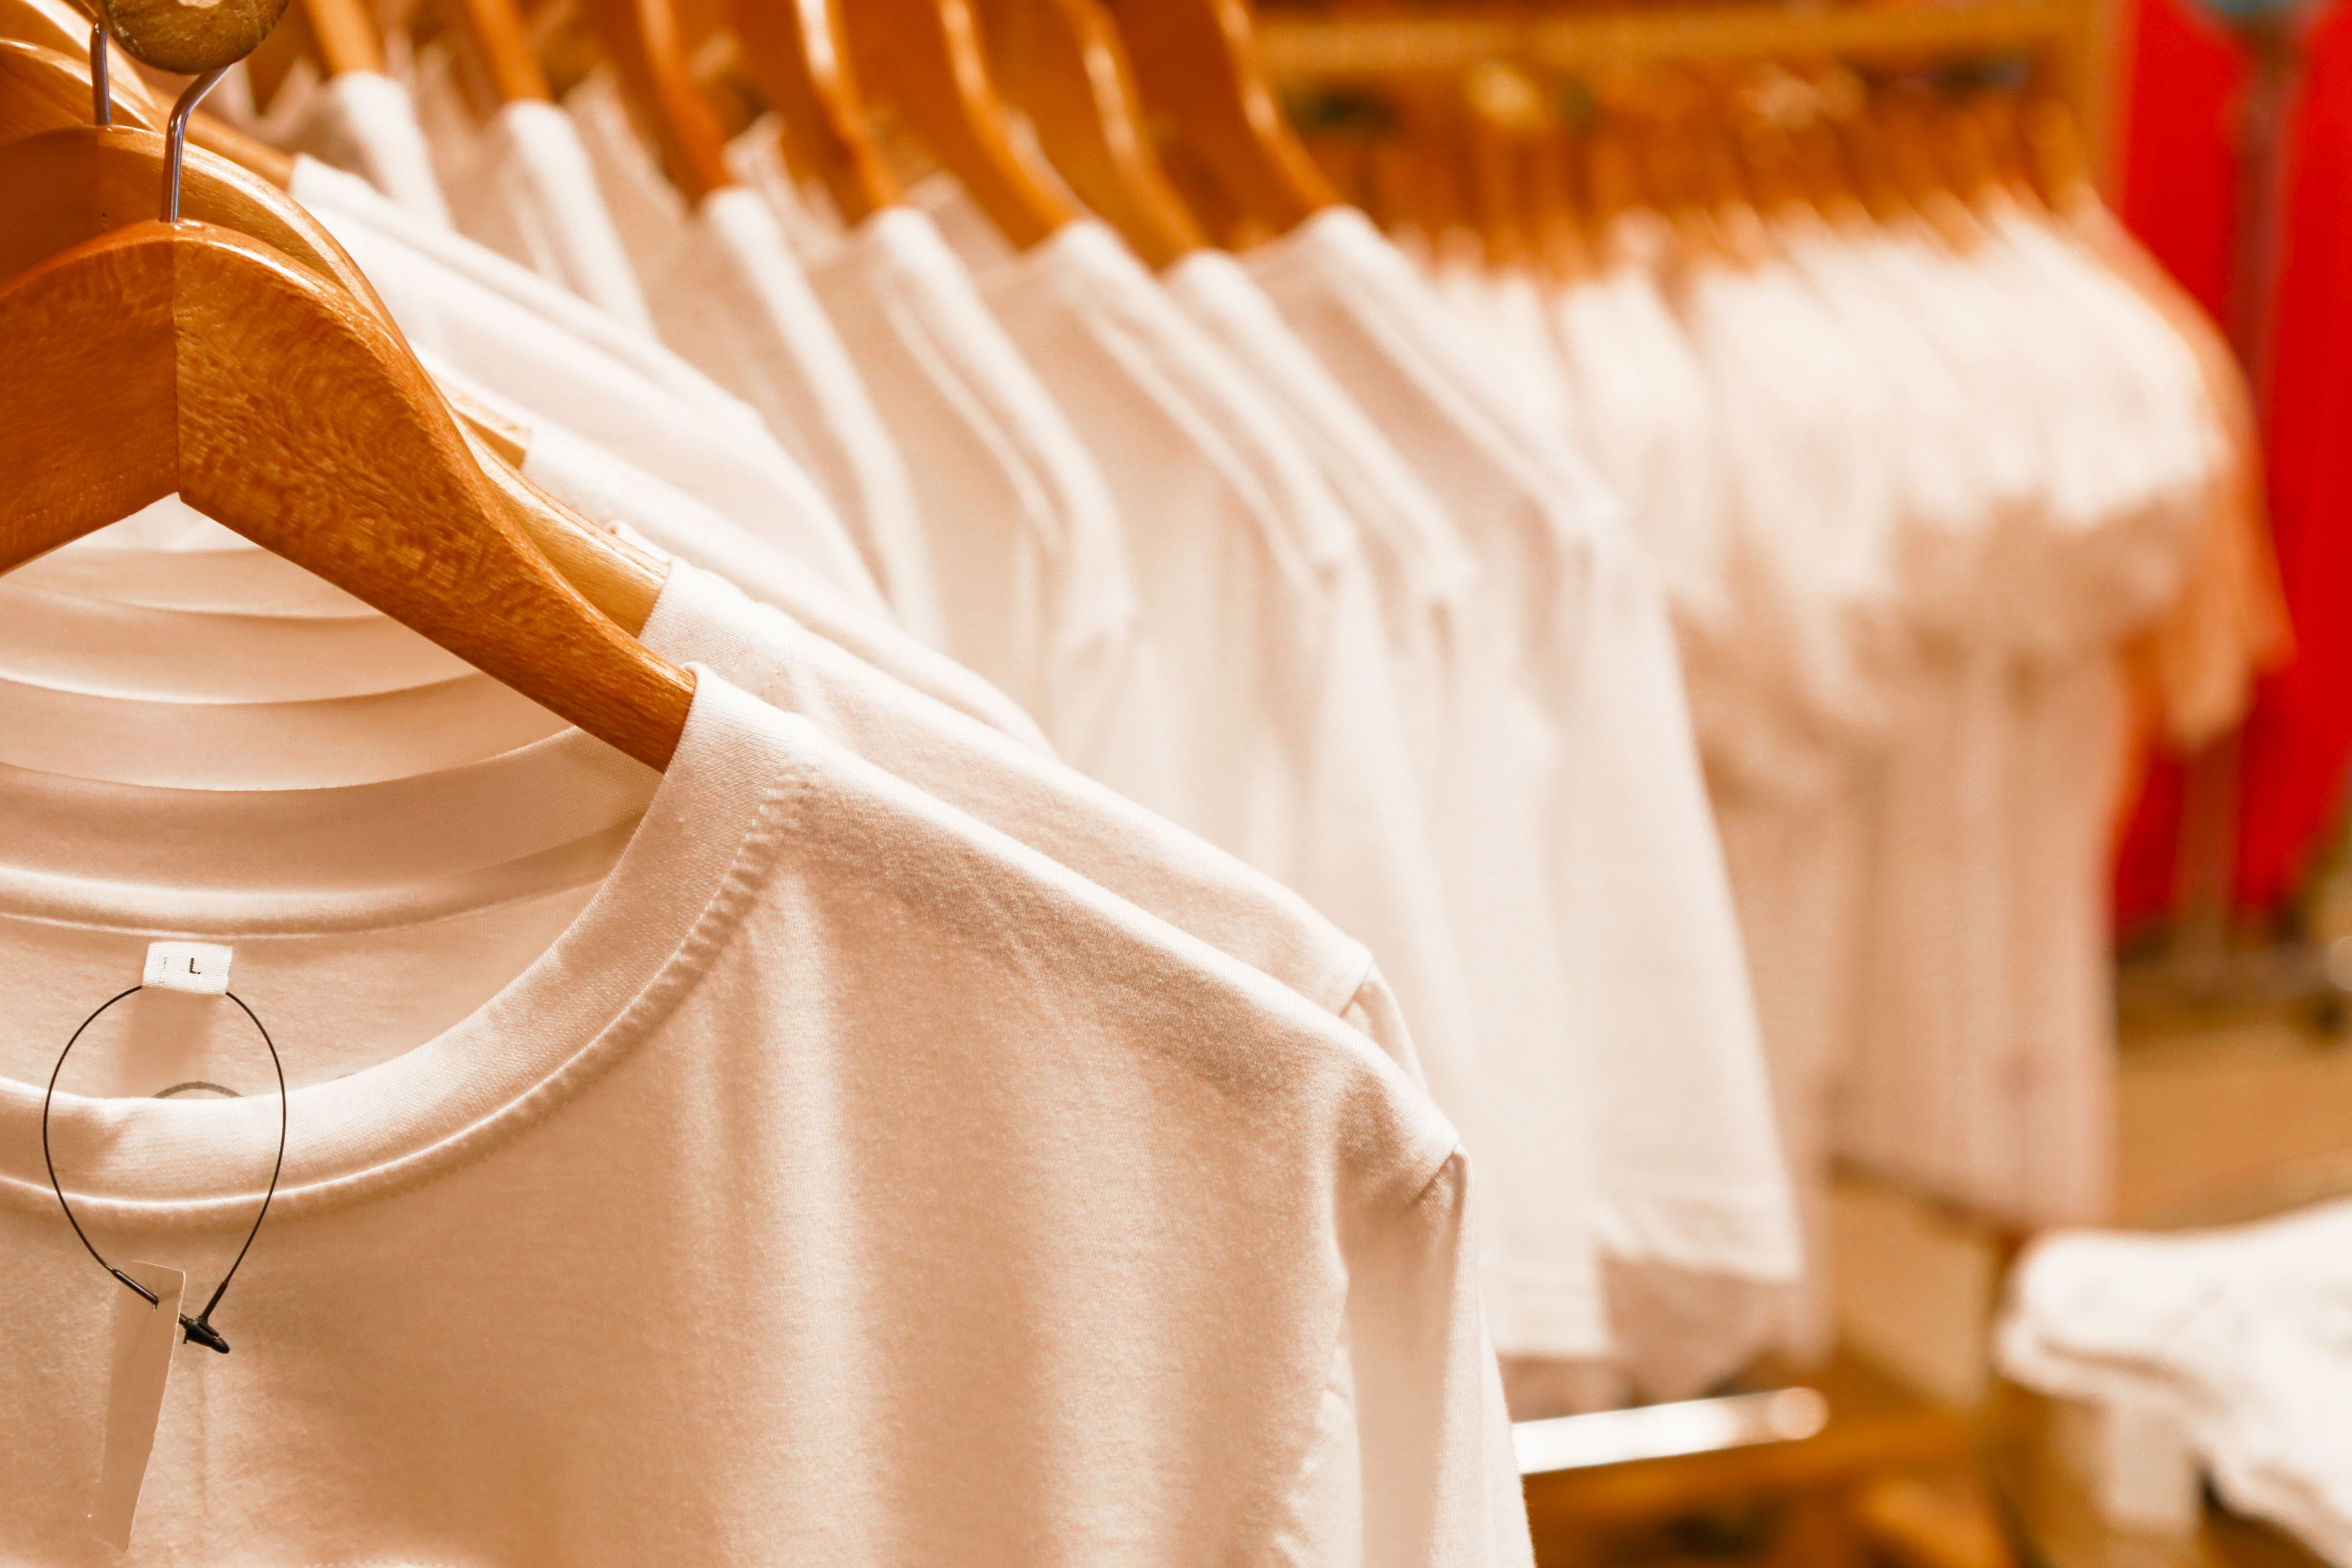 This Is Why Some White T-Shirts Sell For $5 And Others Cost $125